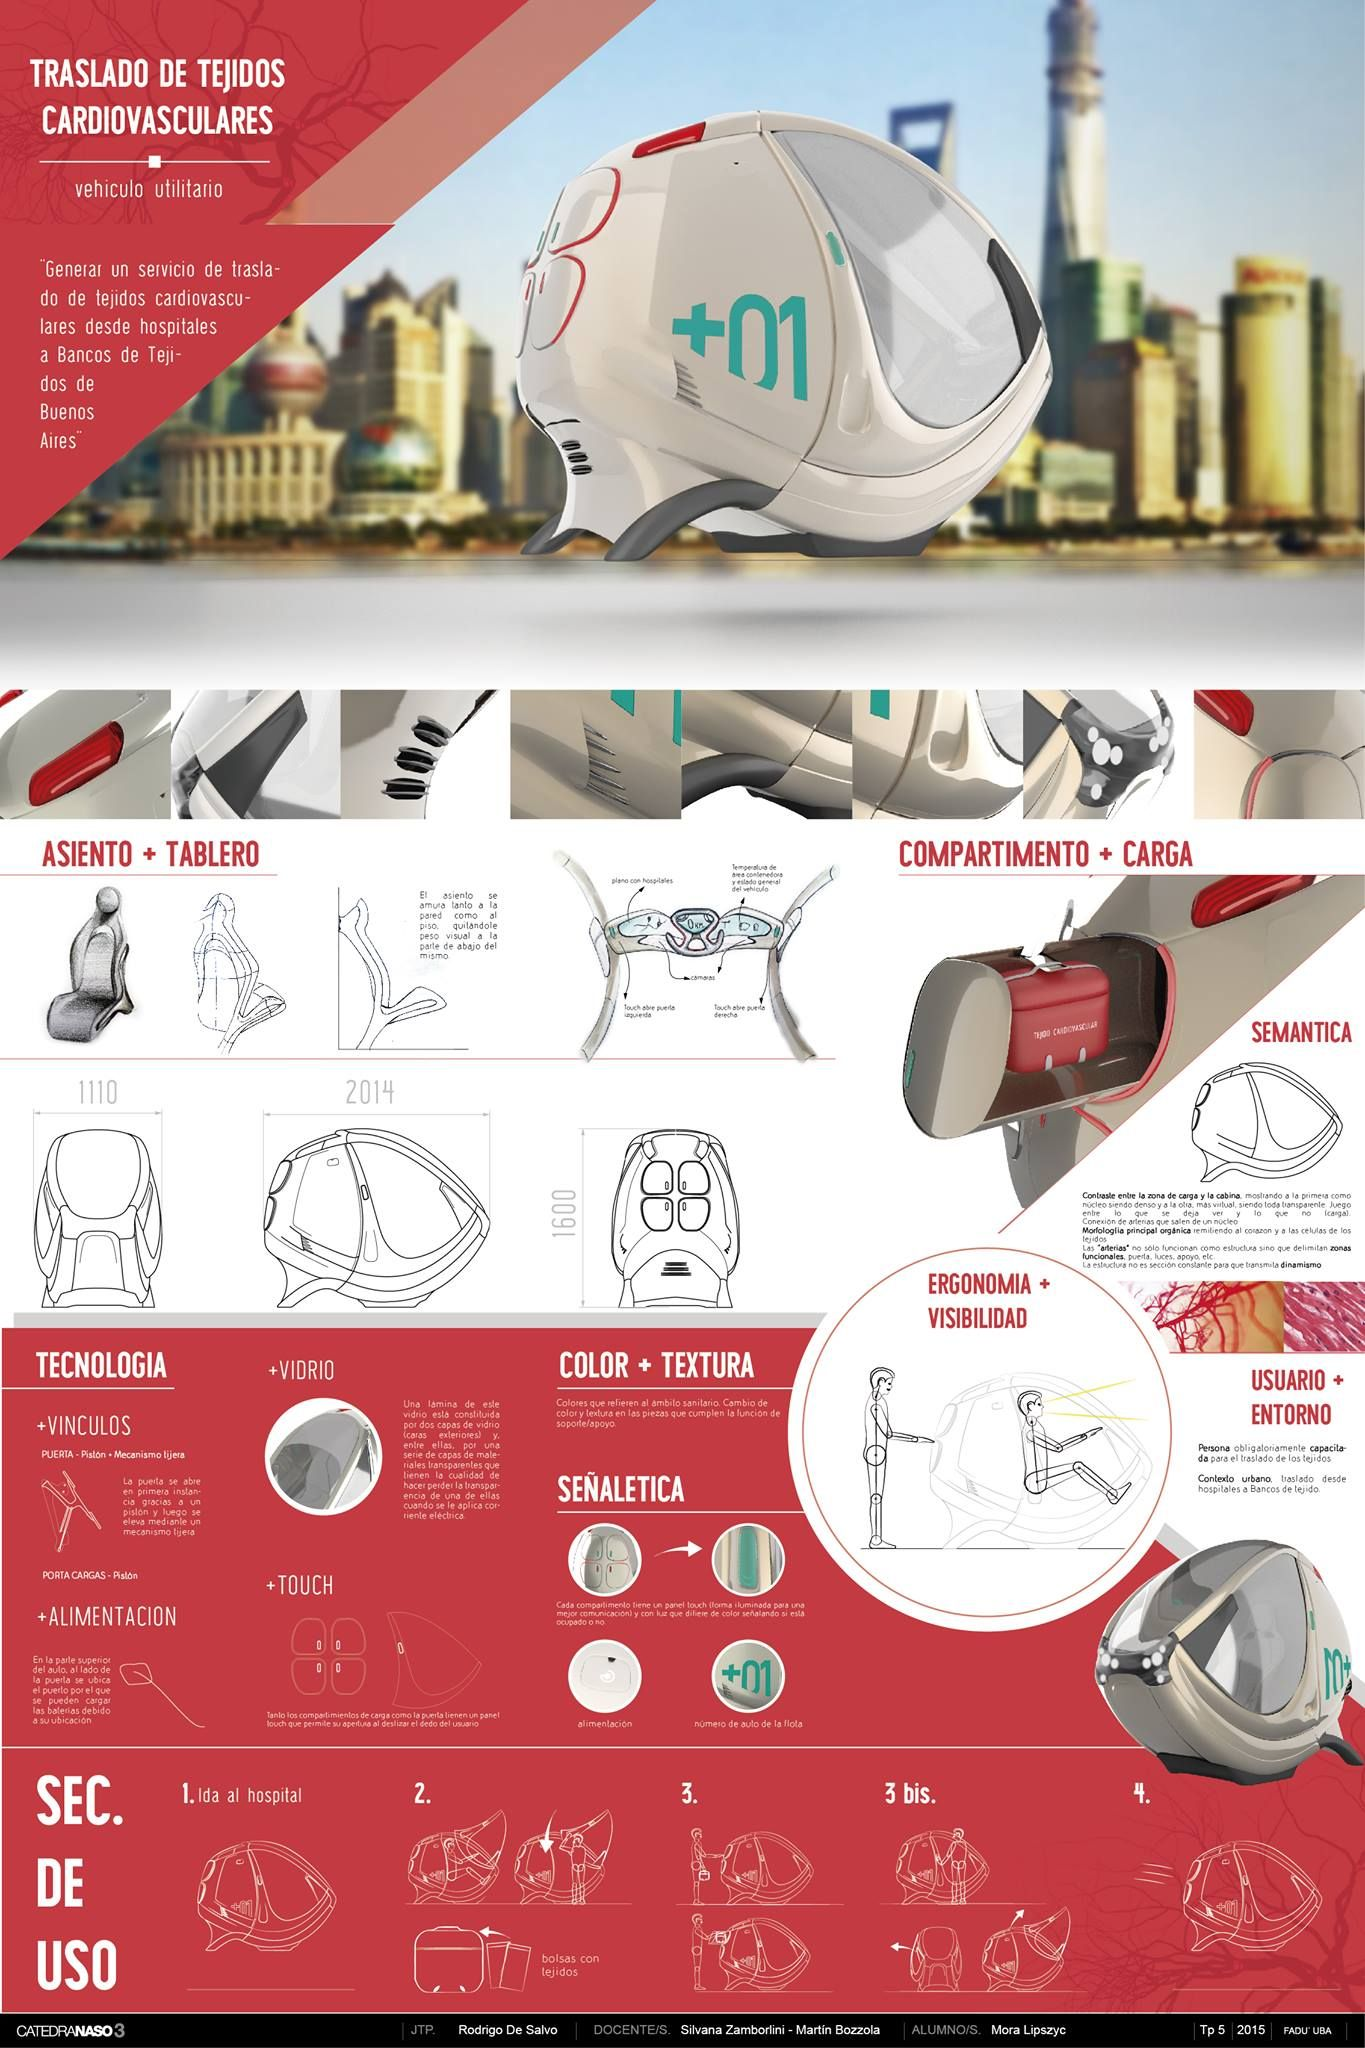 Pin by Mariano f on Paneles   Pinterest   Layouts, Product ...